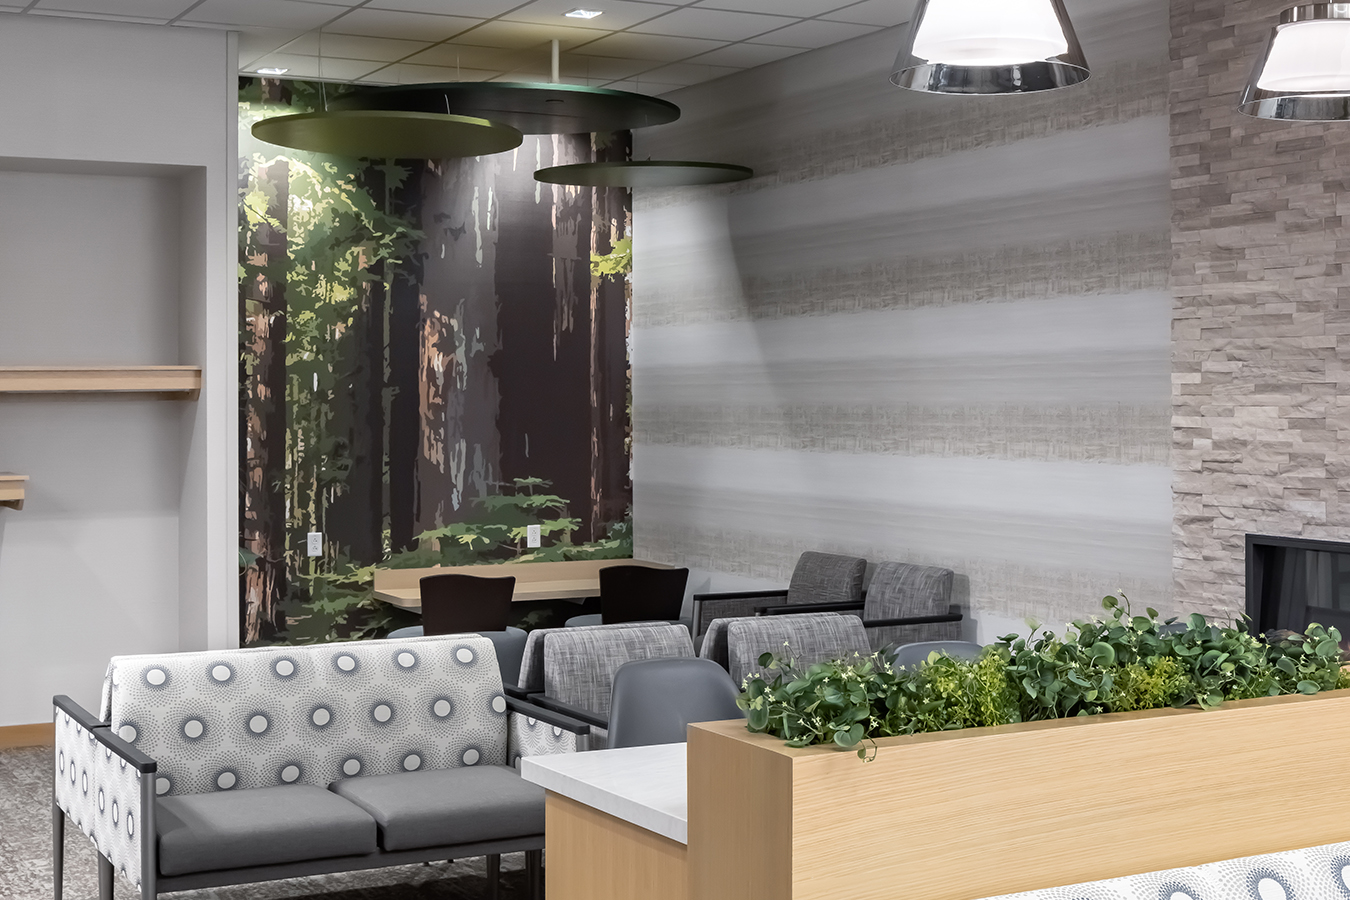 Fairview health services river falls WI Wisconsin BDH Koroseal large scale wallcovering custom vector children chidlren's graphic green tree trees branches forest canopy fort waiting lobby positive distraction children's hospital art biophilic design